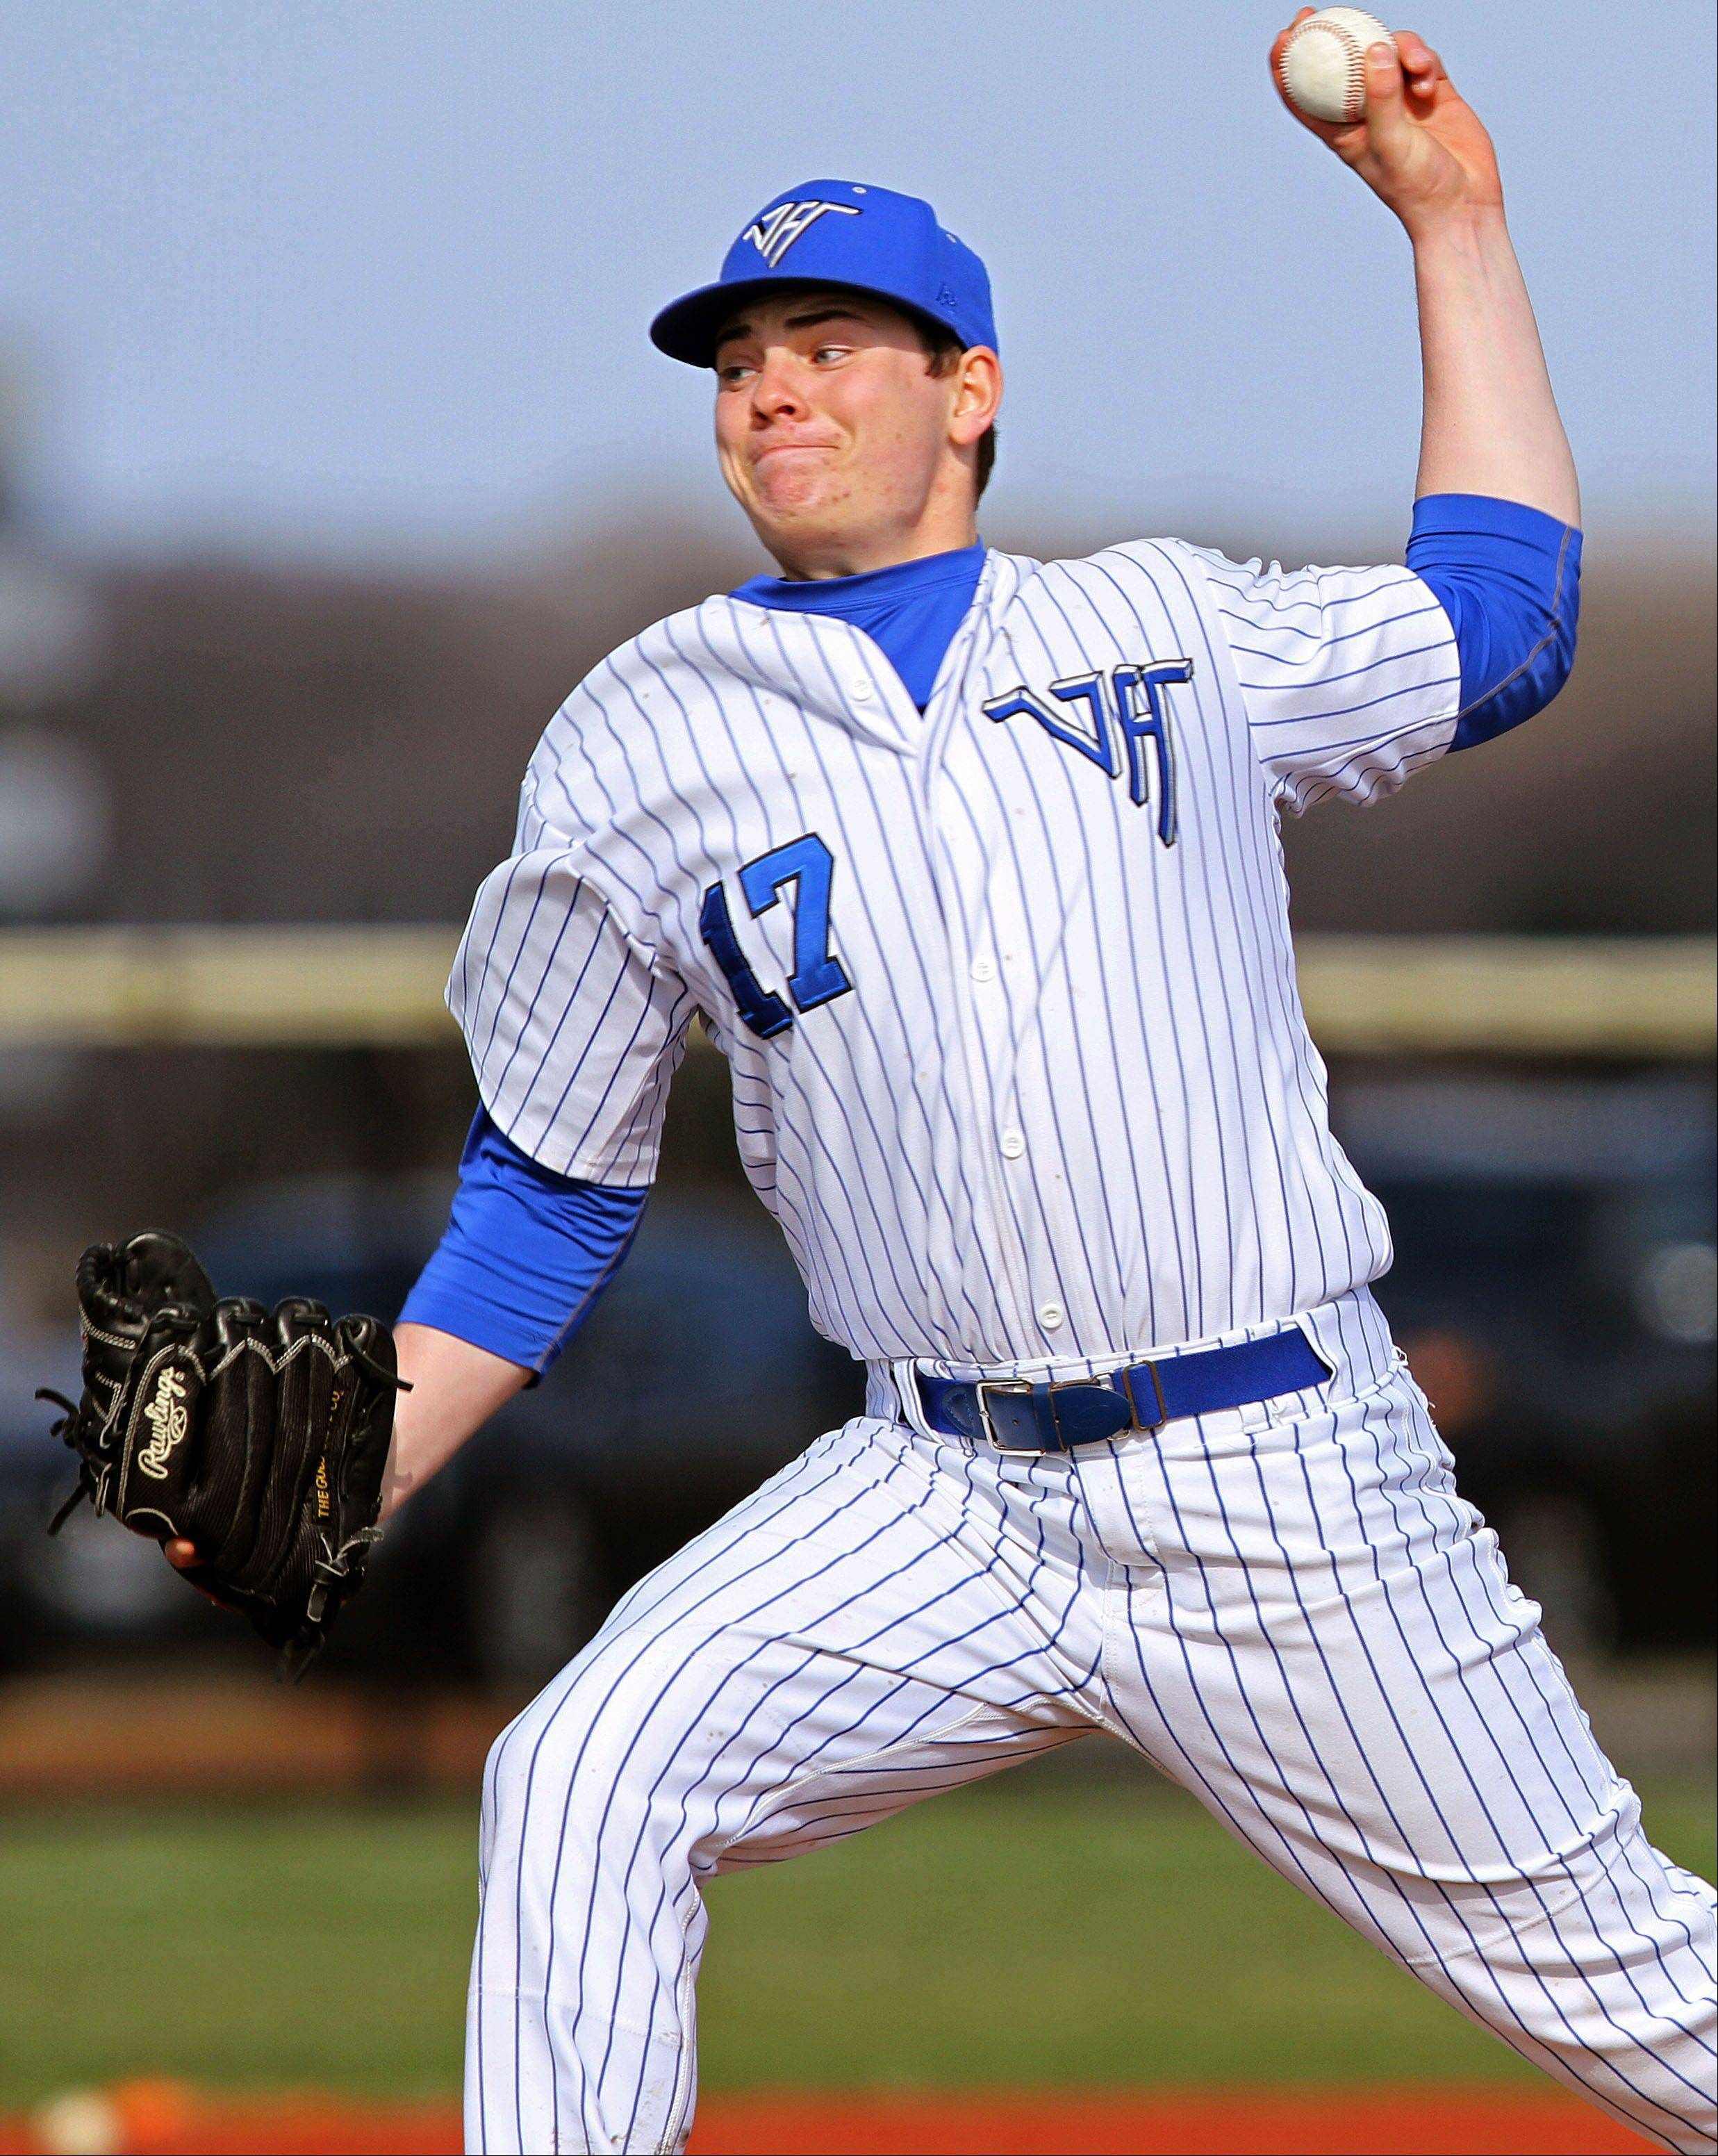 Vernon Hills' Tyler Feece pitches against Wauconda on Wednesday at Vernon Hills.